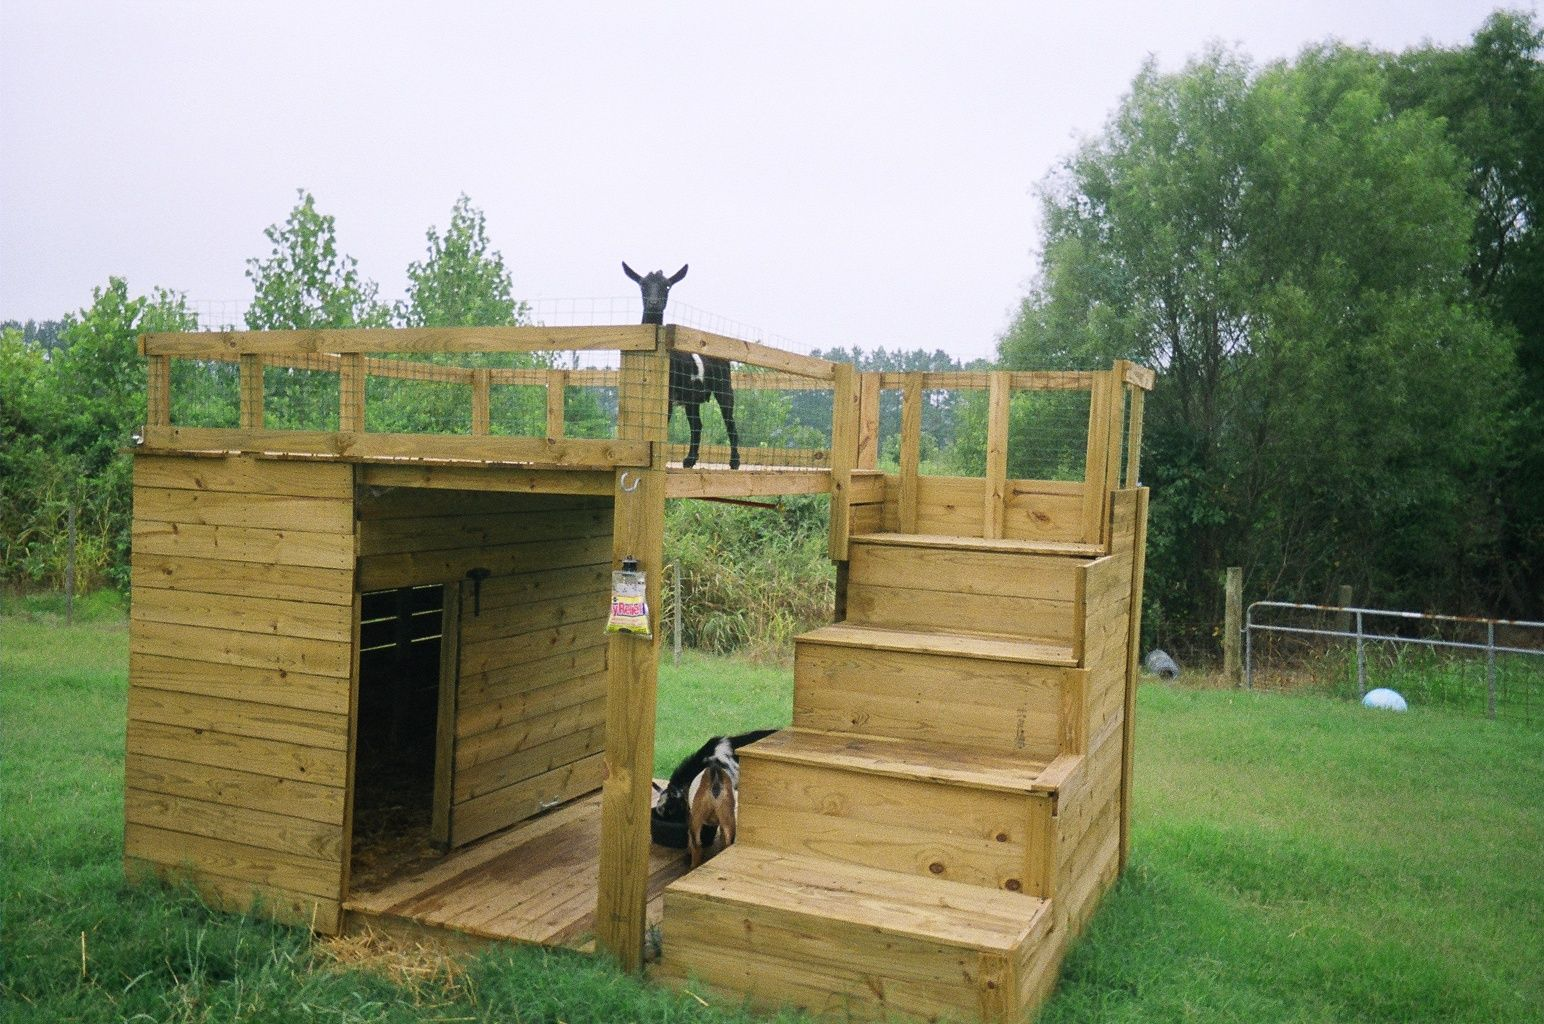 And Someday When We Have Coops Full Of Rescue Chickens Well Goats Running Playing On Their Goat Fort LOL You Need A Couple Thick Poles